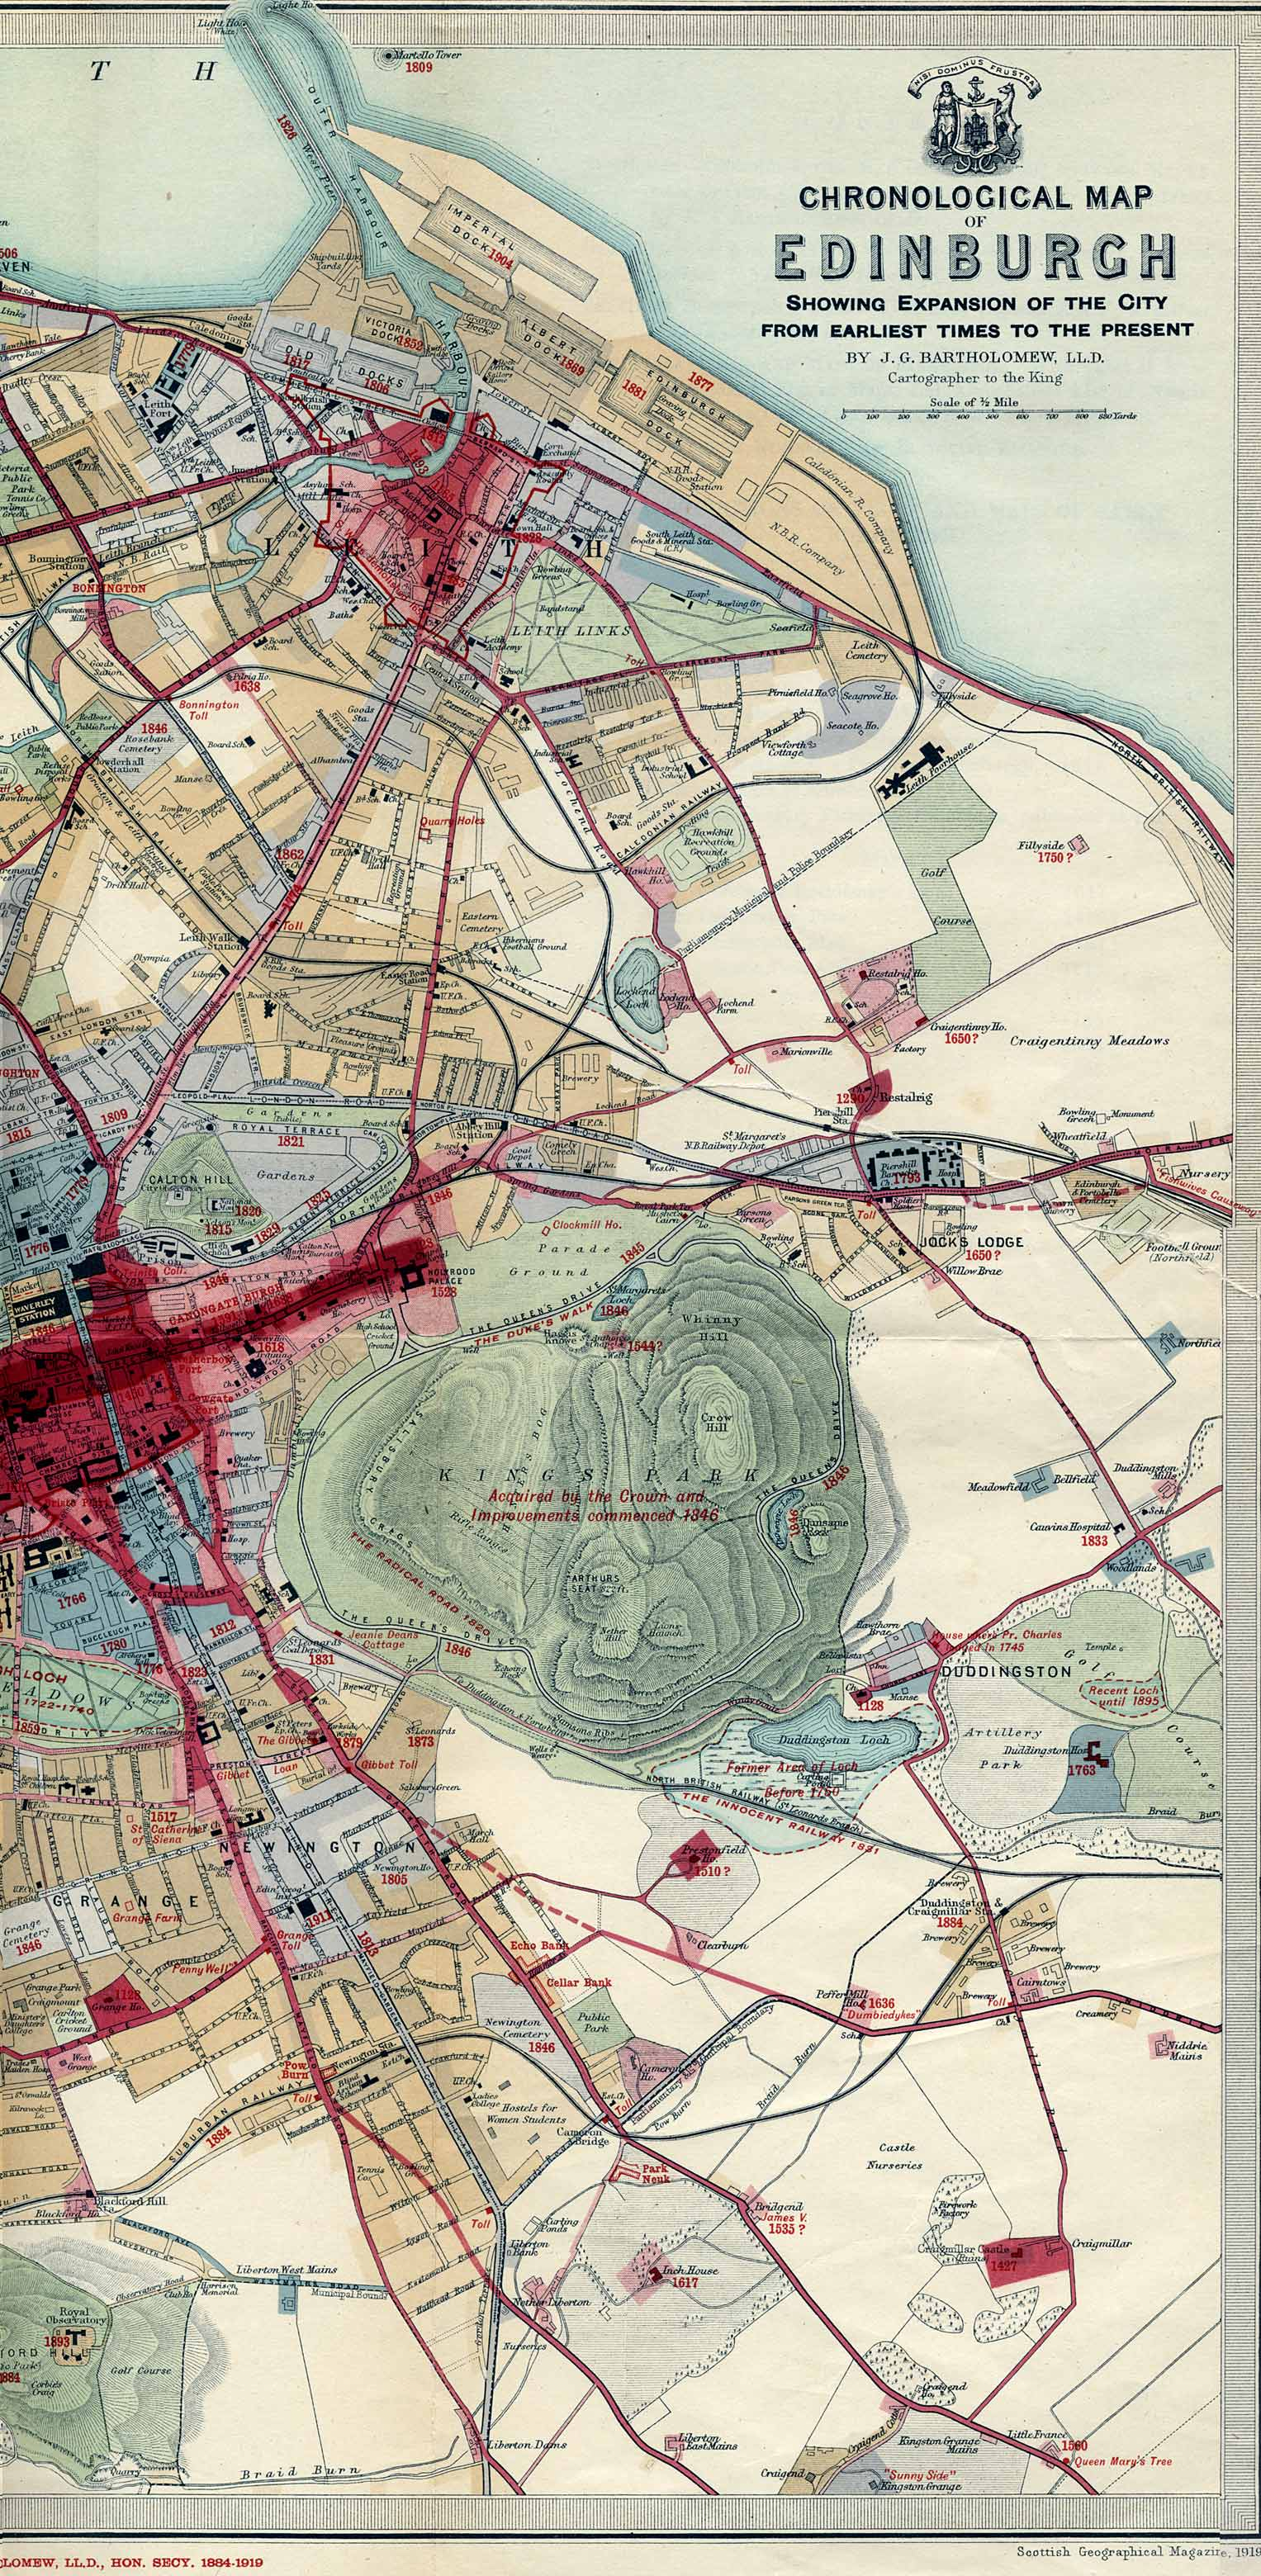 Edinburgh Chronological Map  -  Published 1919  -  East Section